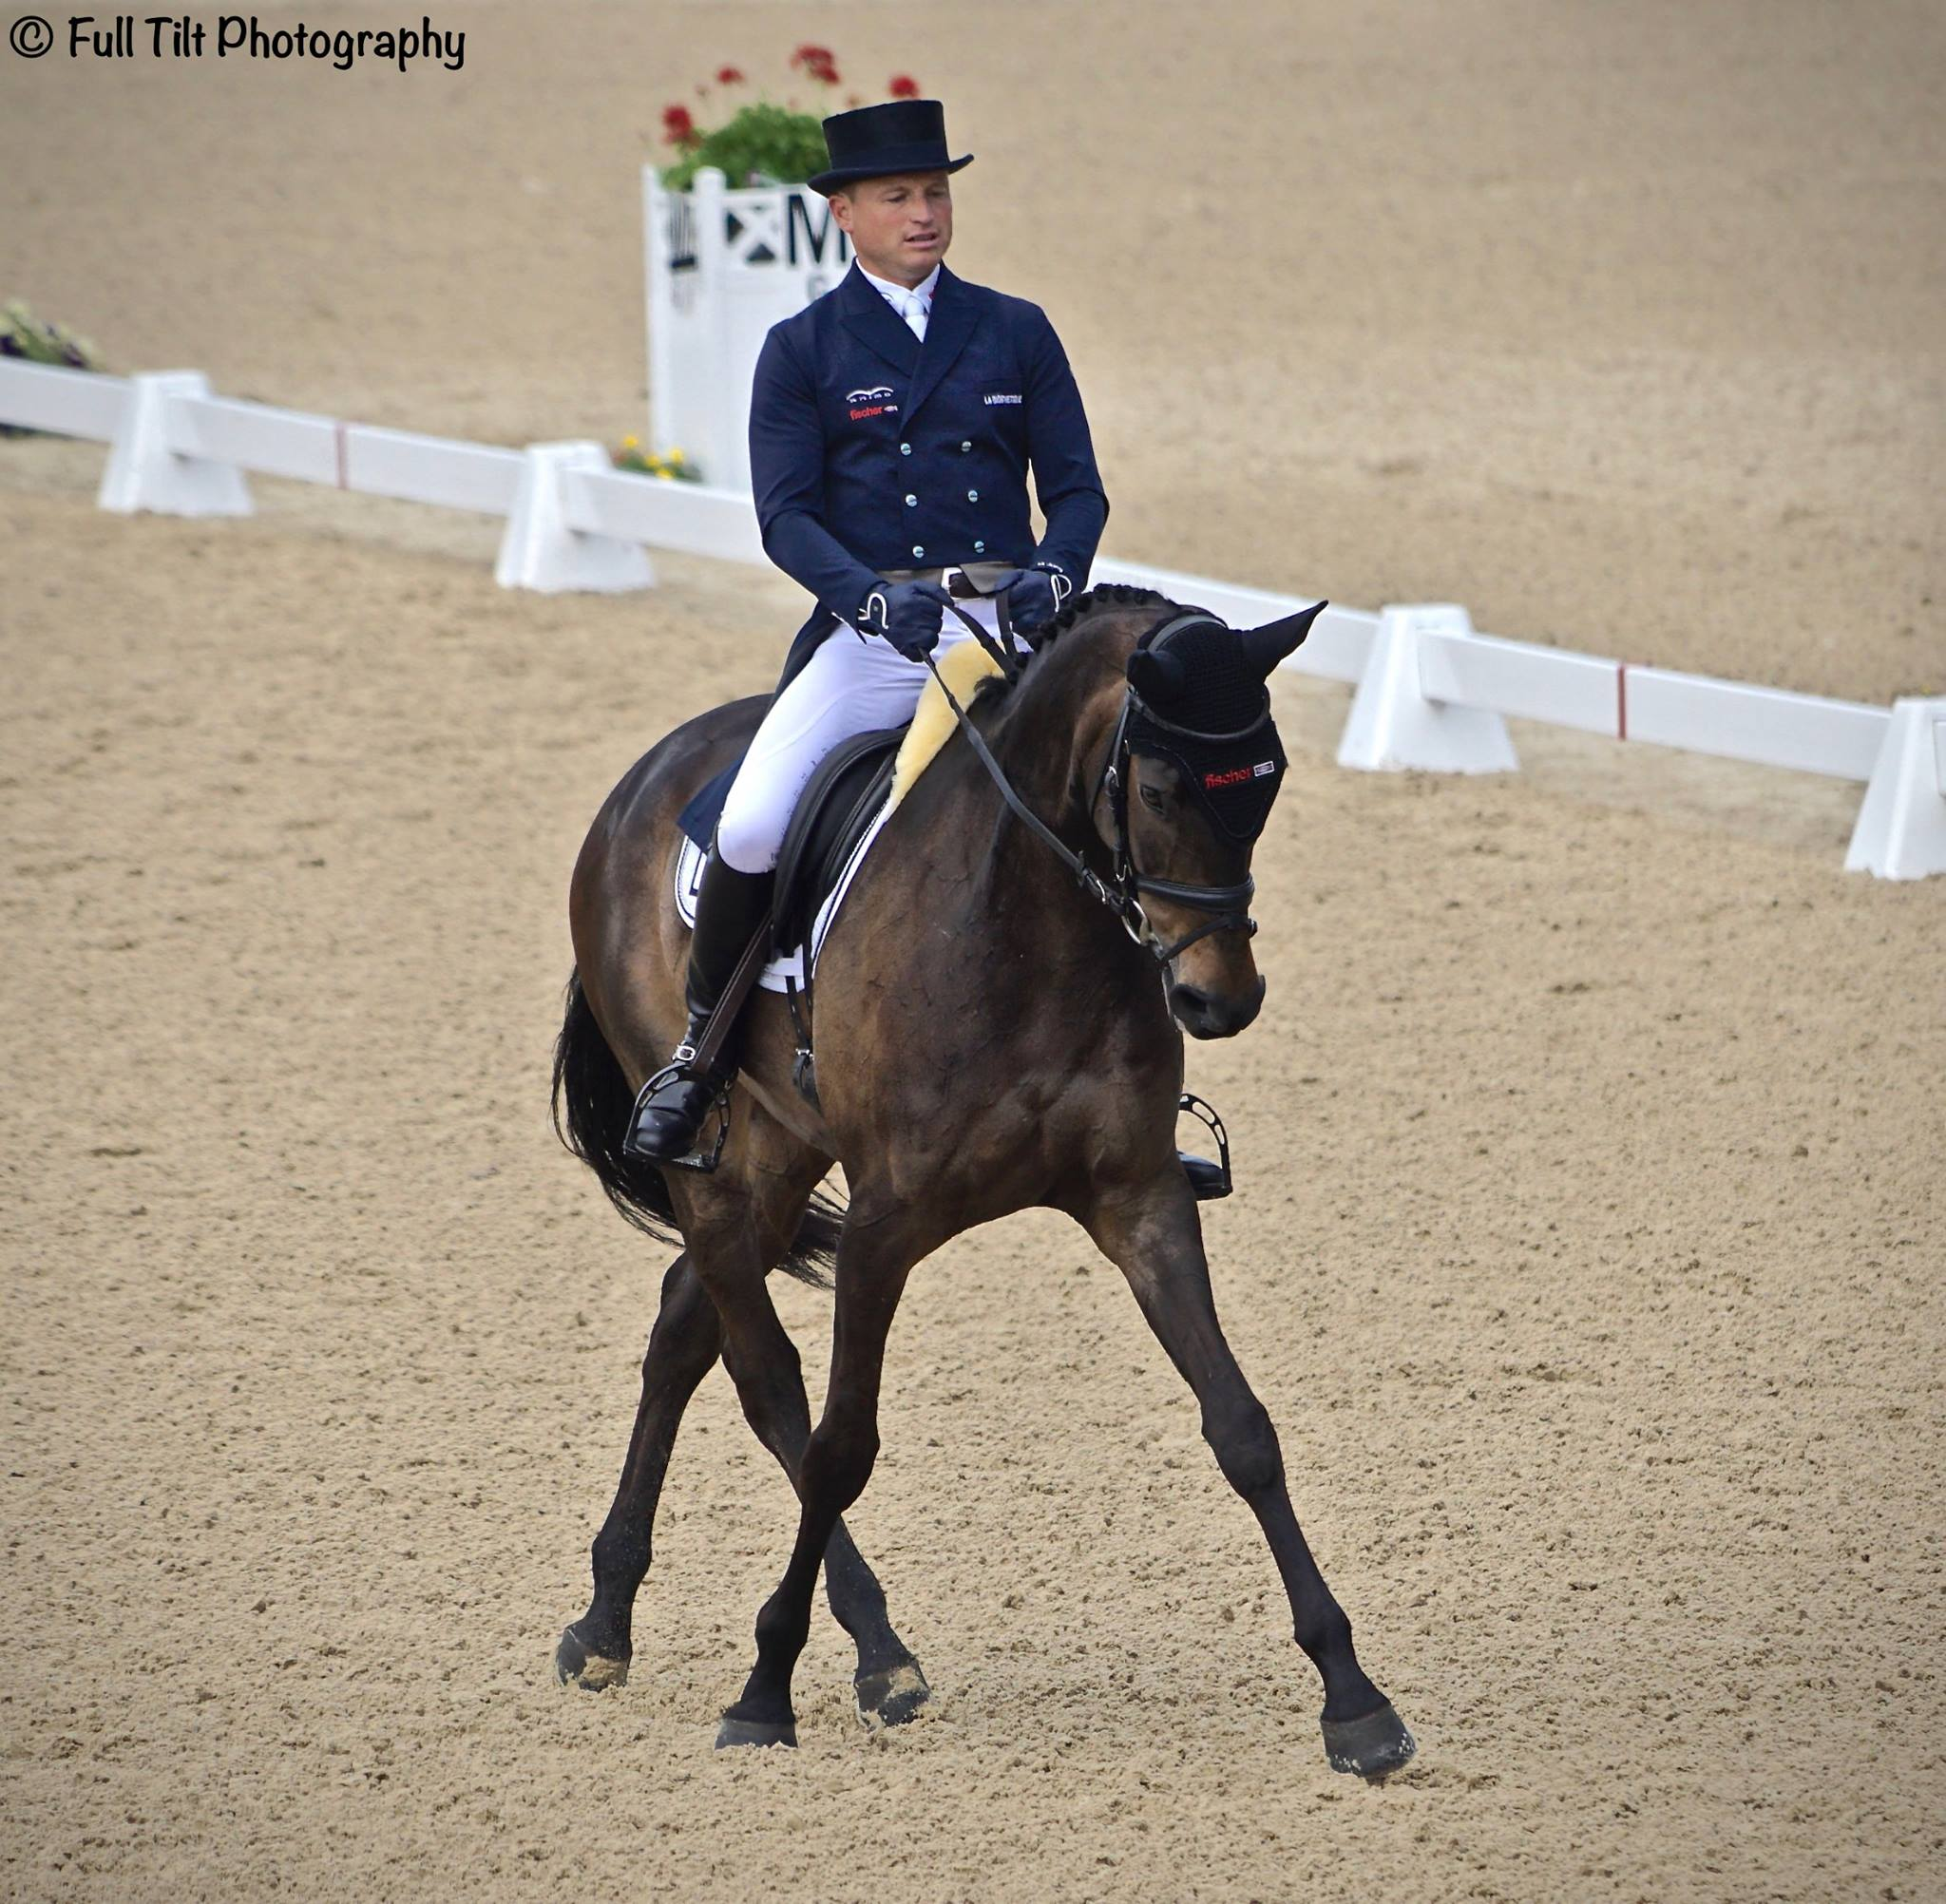 Half pass in Dressage | Eventing